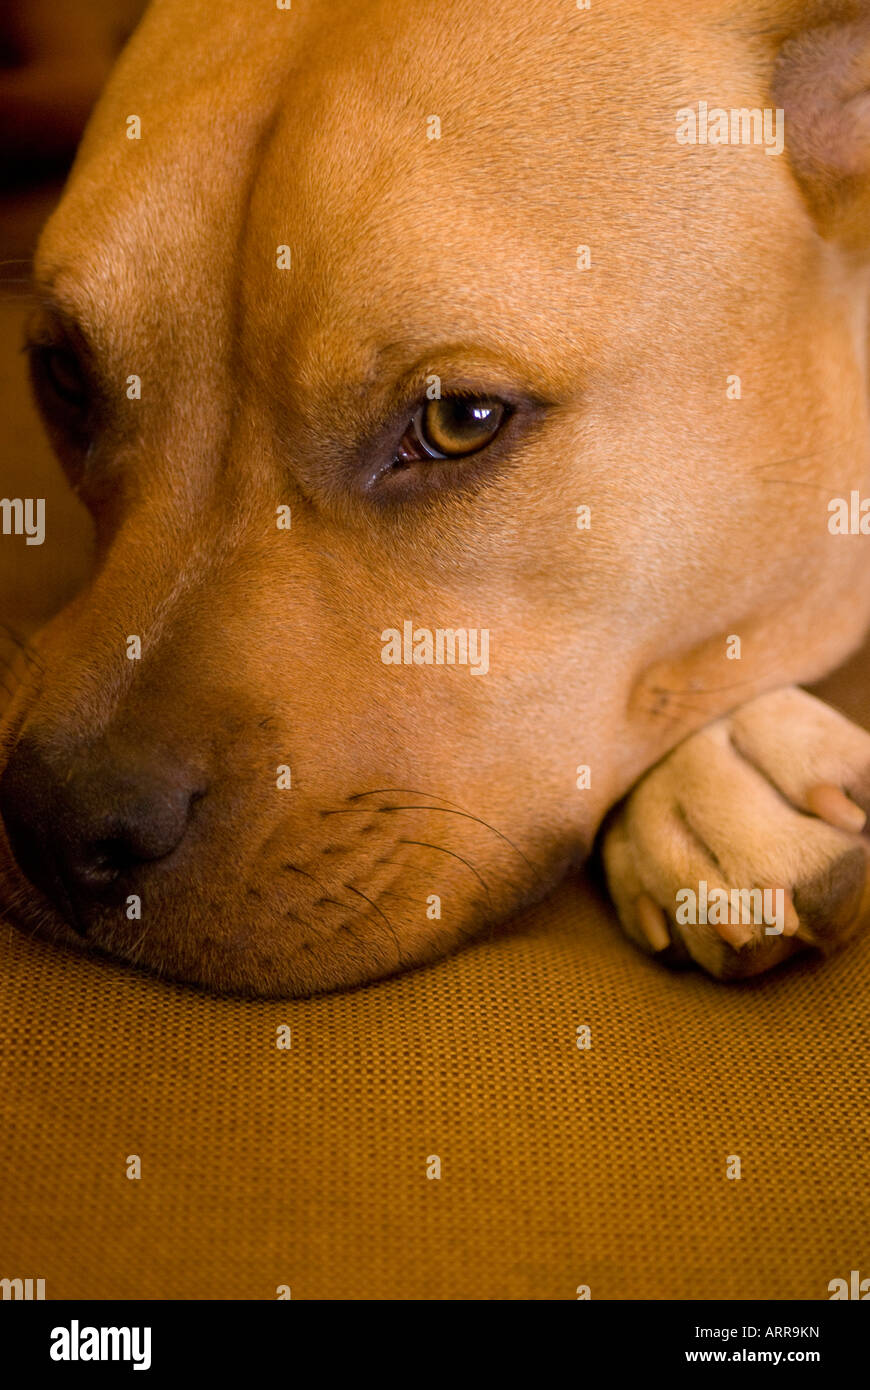 Pit Bull, Muddy, giving you the eye - Stock Image